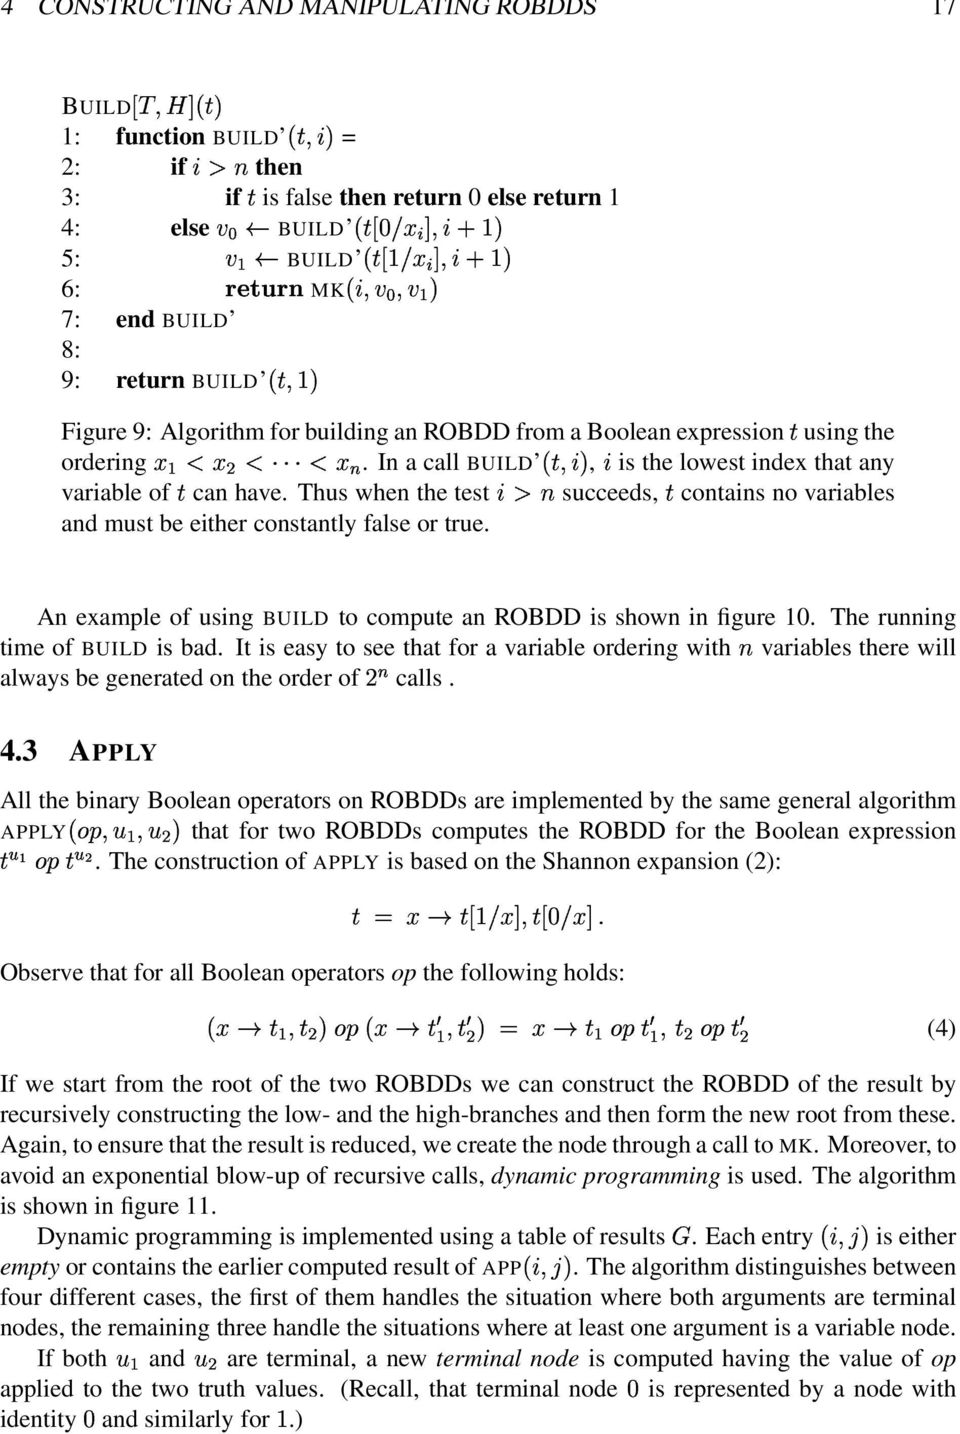 # 7: end BUILD 8: 9: return BUILD H # Figure 9: Algorithm for building an RBDD from a Boolean expression using the ordering 9;Ó9 D2D2D 9ª( In a call BUILD C ] #, ] is the lowest index that any